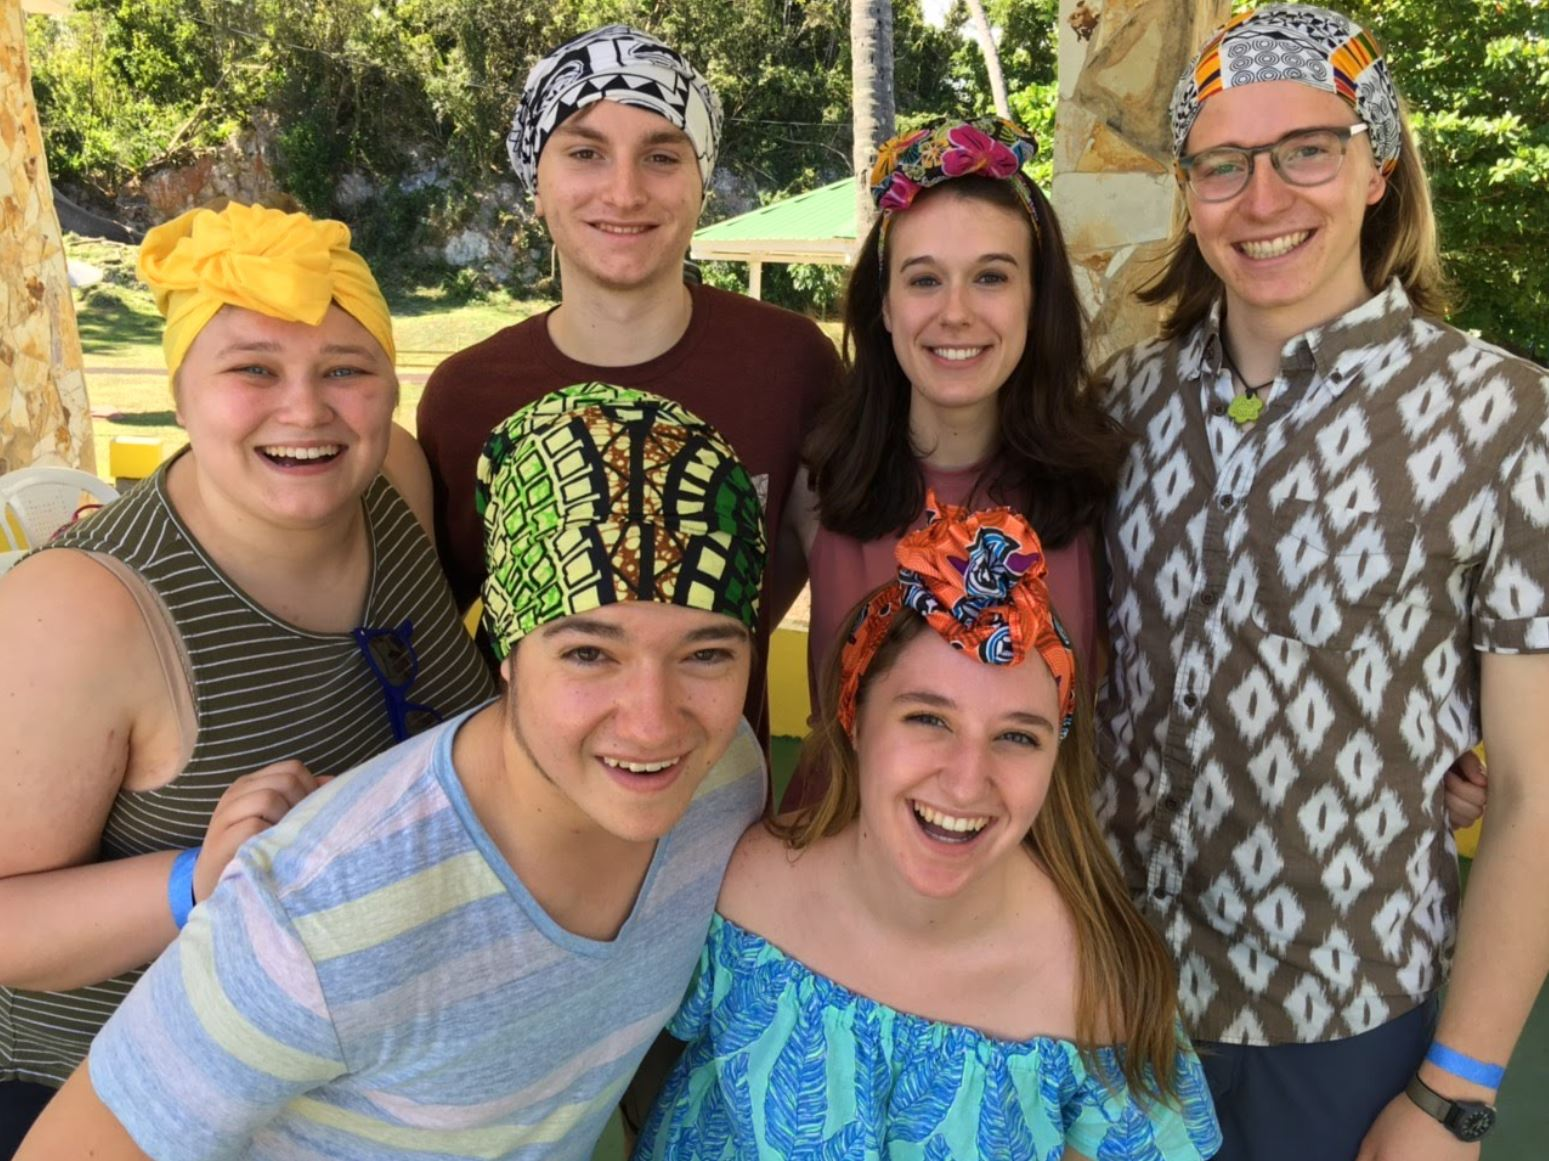 Vanessa Case '19, Brian Buechele '22, Olivia Benson '19, Zach De Besche '22, Eric Gabriel '22, and Caitie Glance '20 sport their new turbans in the style of traditional Puerto Rican headdress (Photo courtesy of Gettysburg College Choir)